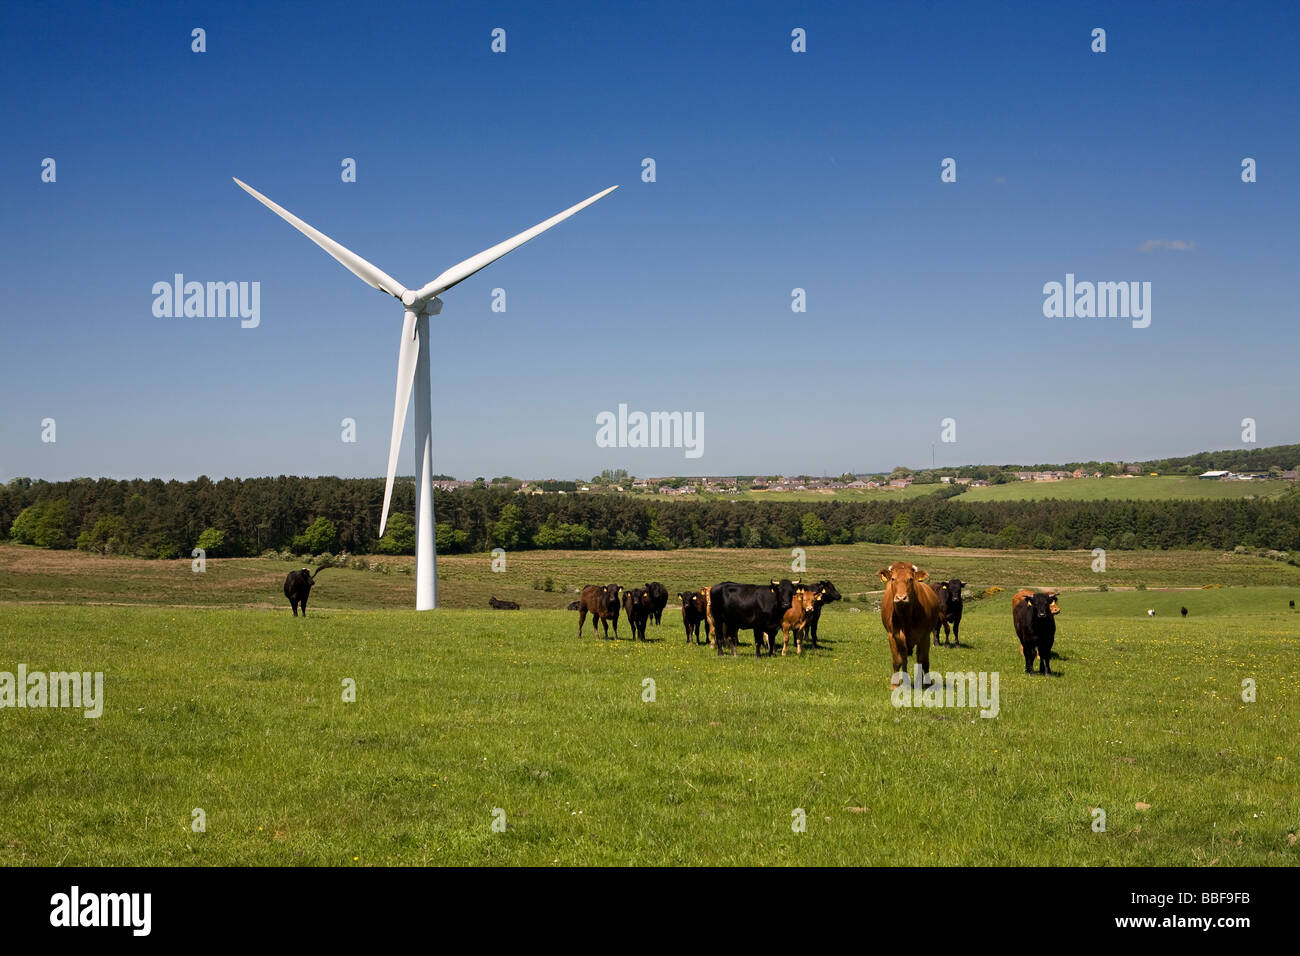 wind-turbine-on-farm-with-cattle-co-durh